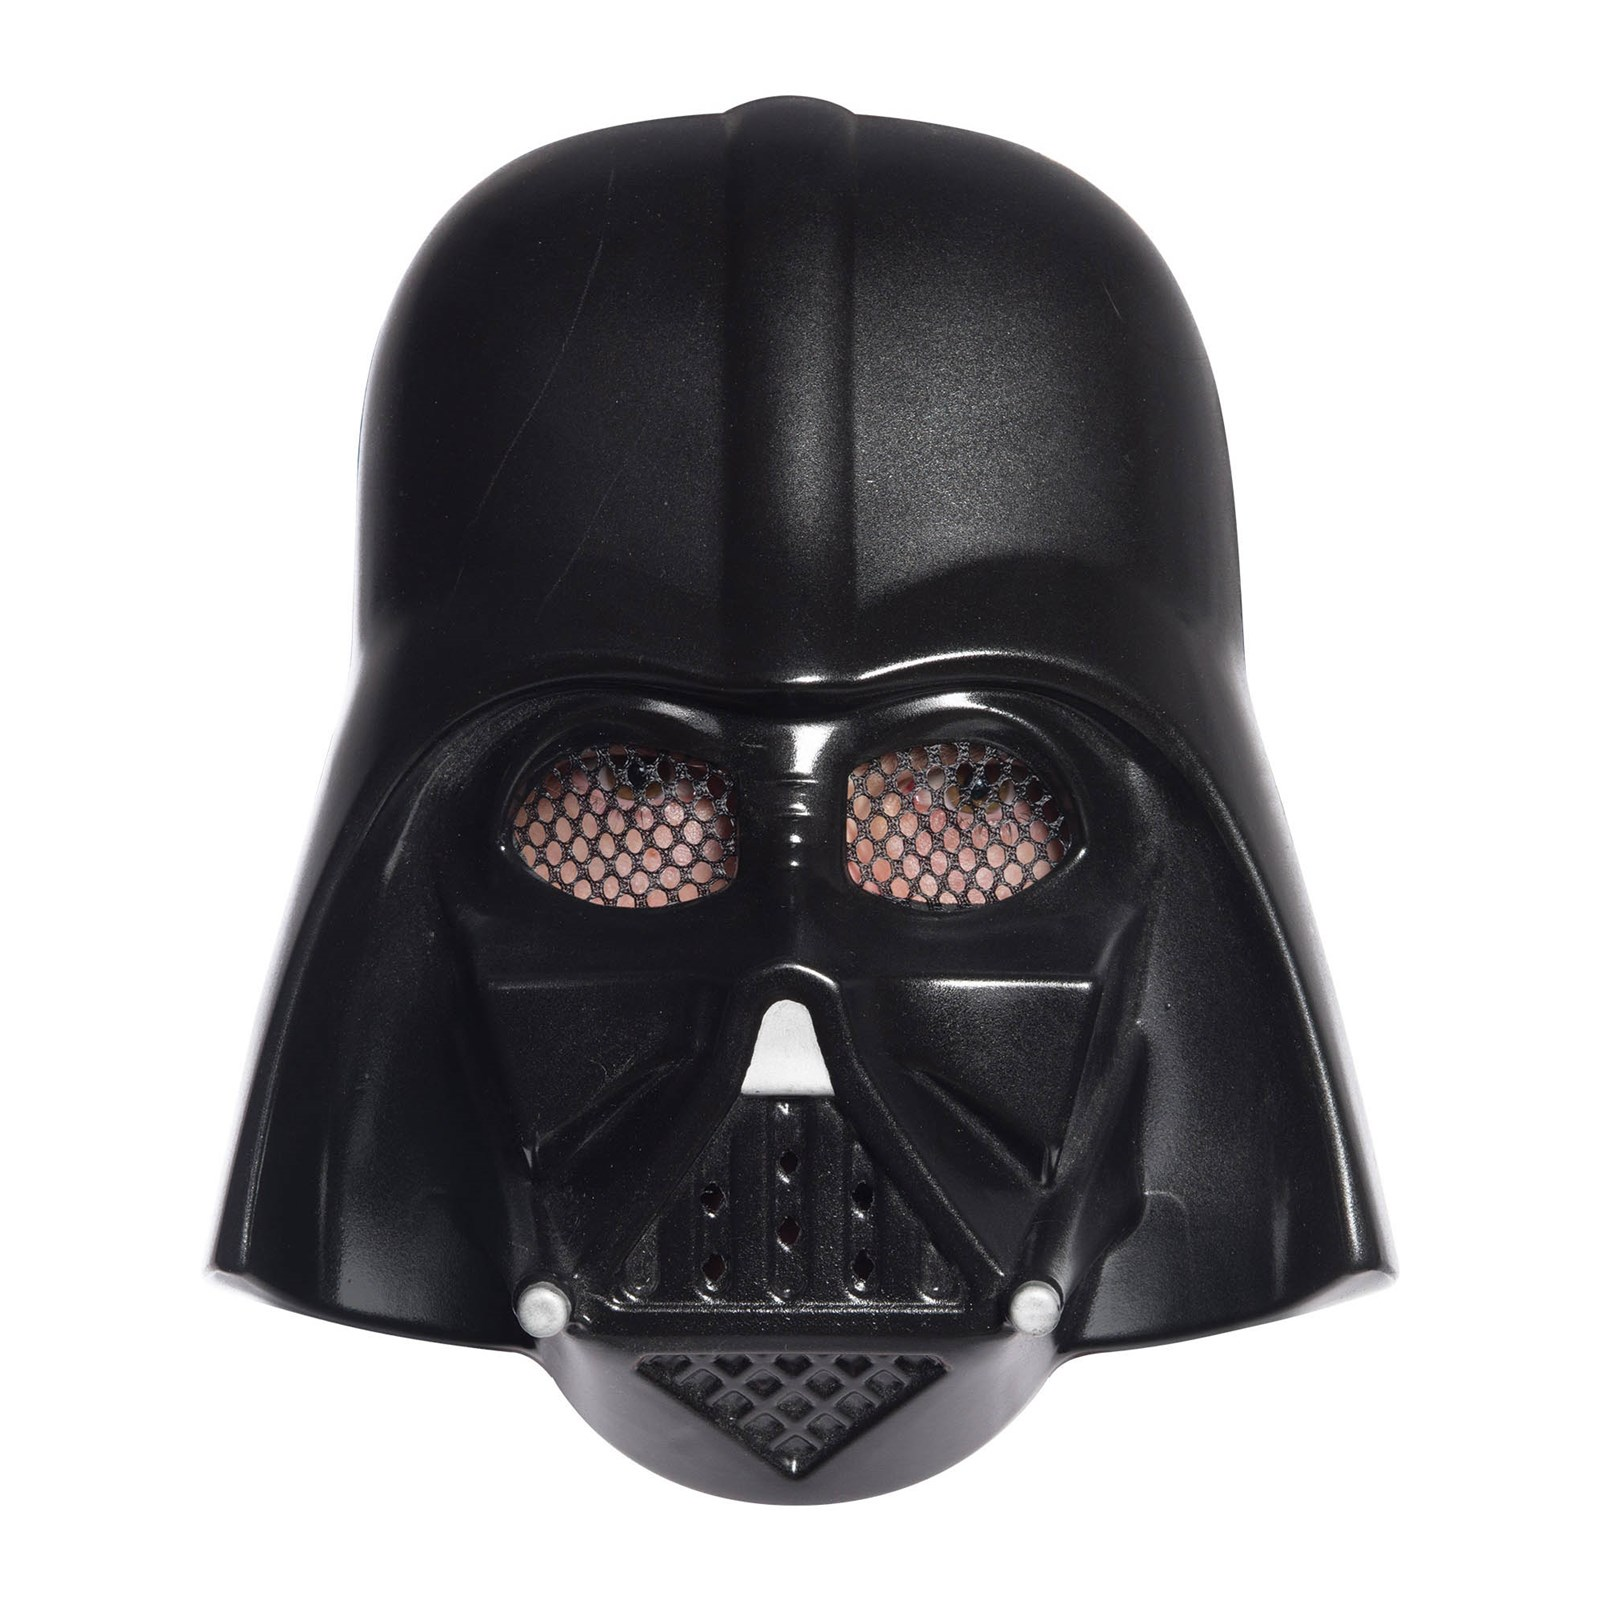 Star Wars Classic Ben Cooper Adult Darth Vader Mask Halloween Costume Accessory